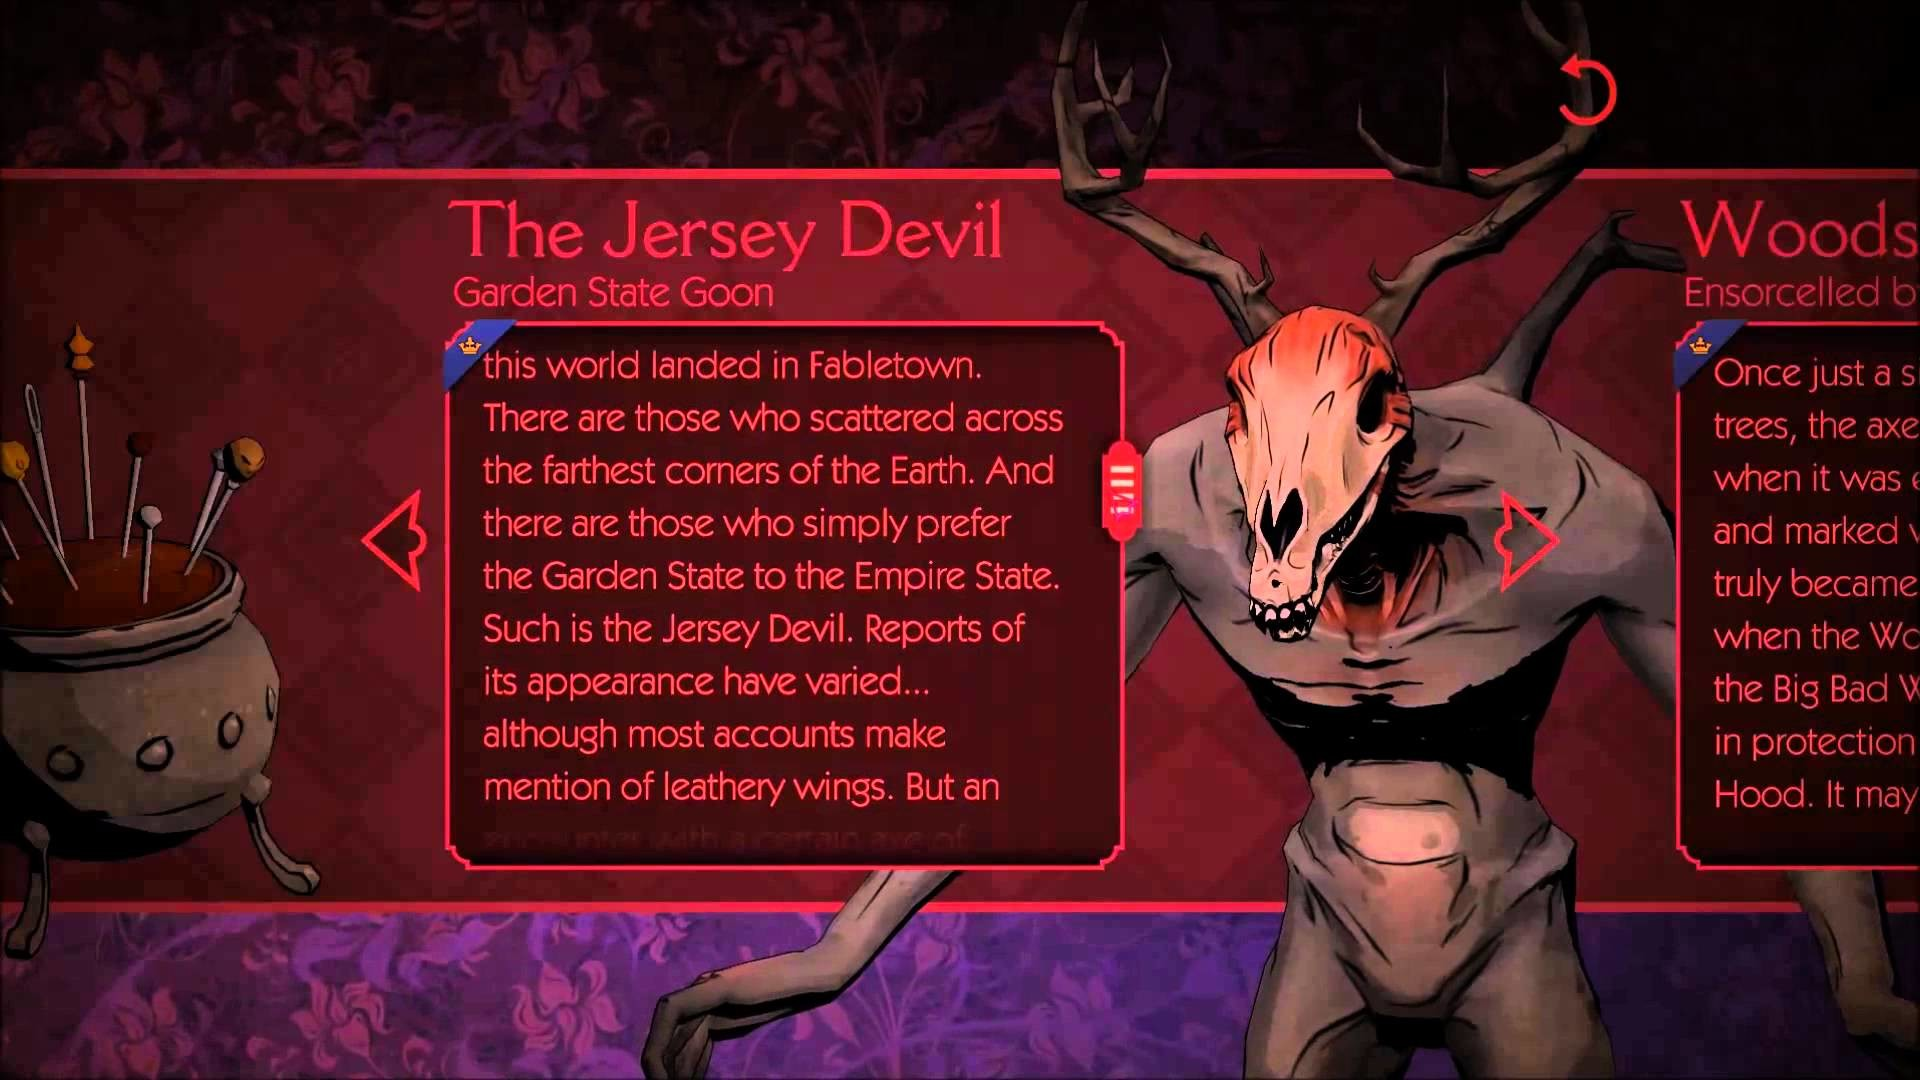 1920x1080 The Jersey Devil's galleries